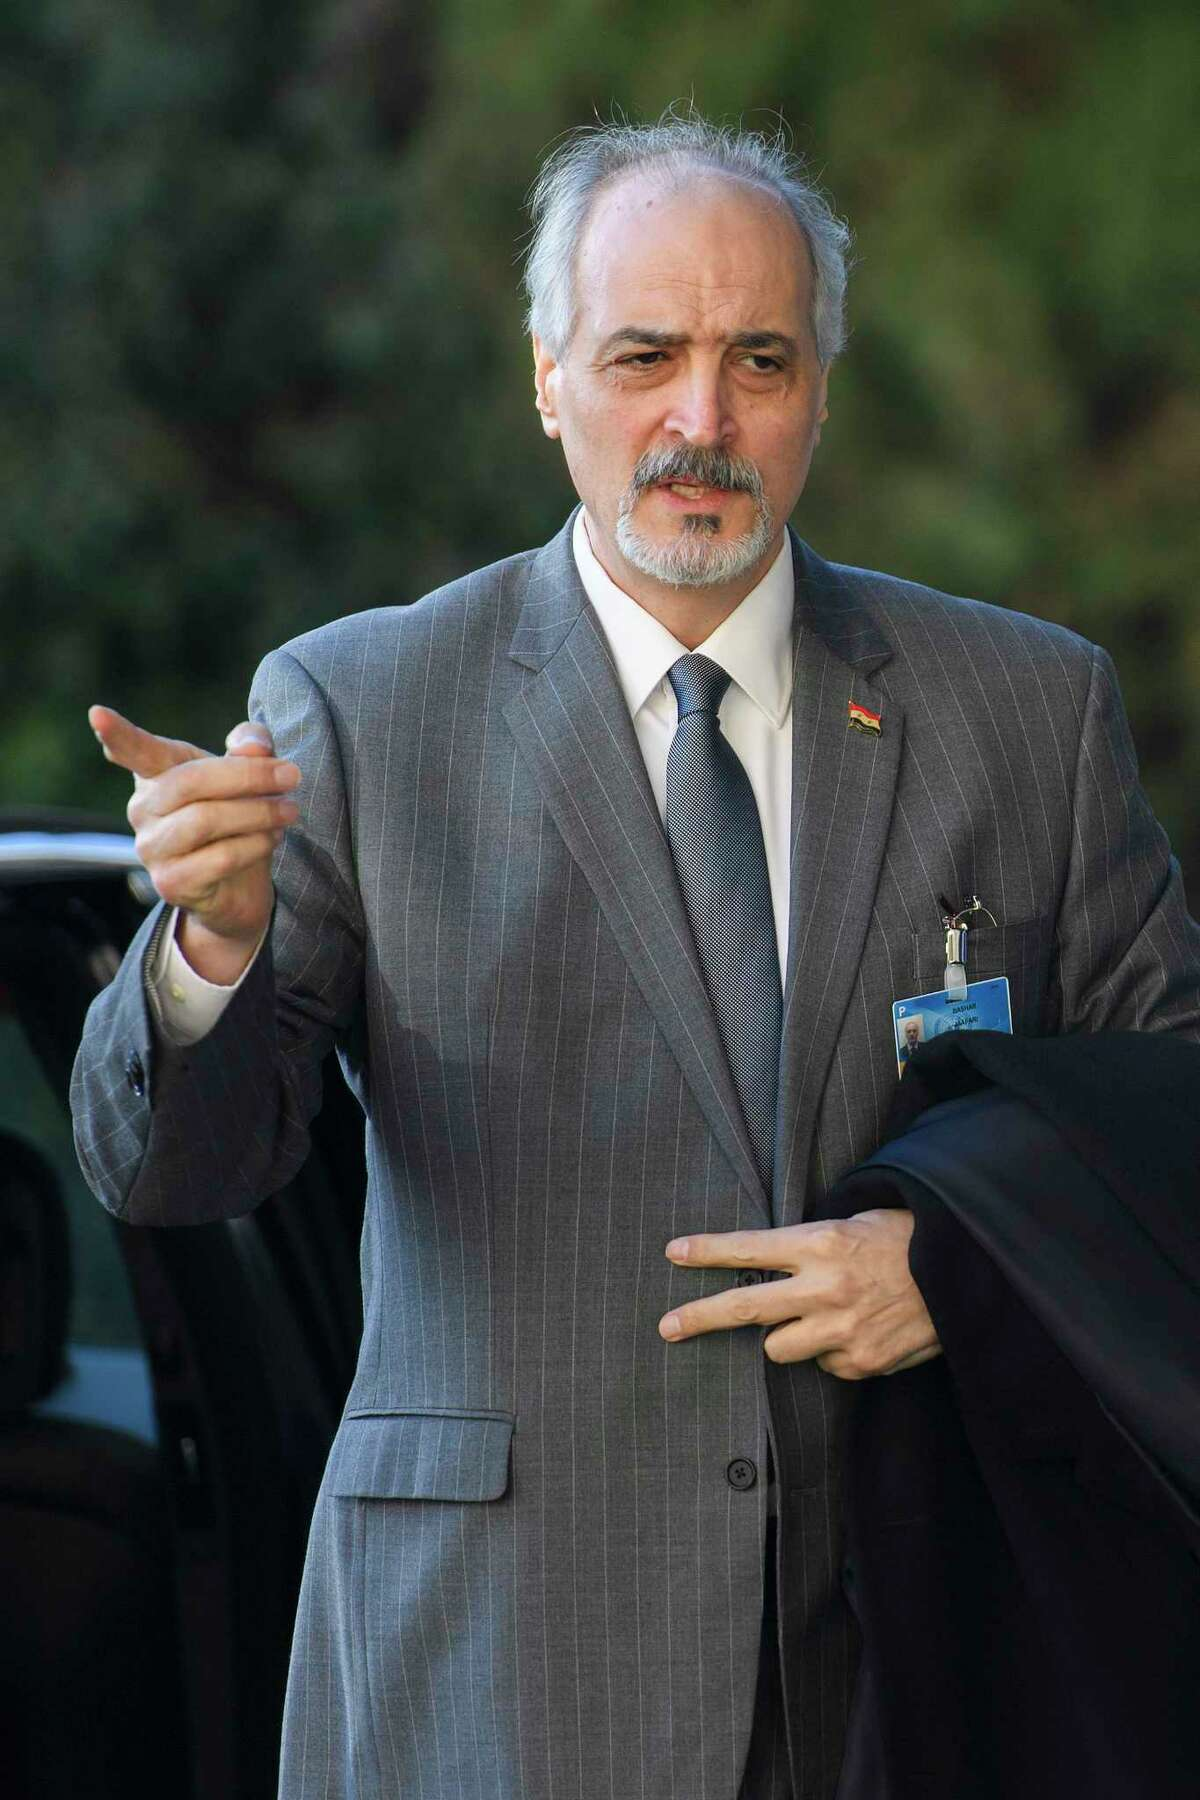 Syrian chief negotiator Bashar Ja?'afari, Ambassador of the Permanent Representative Mission of Syria to UN New York, arrives for a round of negotiation between the Syrian government and the UN Special Envoy for Syria Staffan de Mistura, at the European headquarters of the United Nations in Geneva, Switzerland, Saturday, Feb. 25, 2017. (Martial Trezzini/Keystone via AP) ORG XMIT: GE413